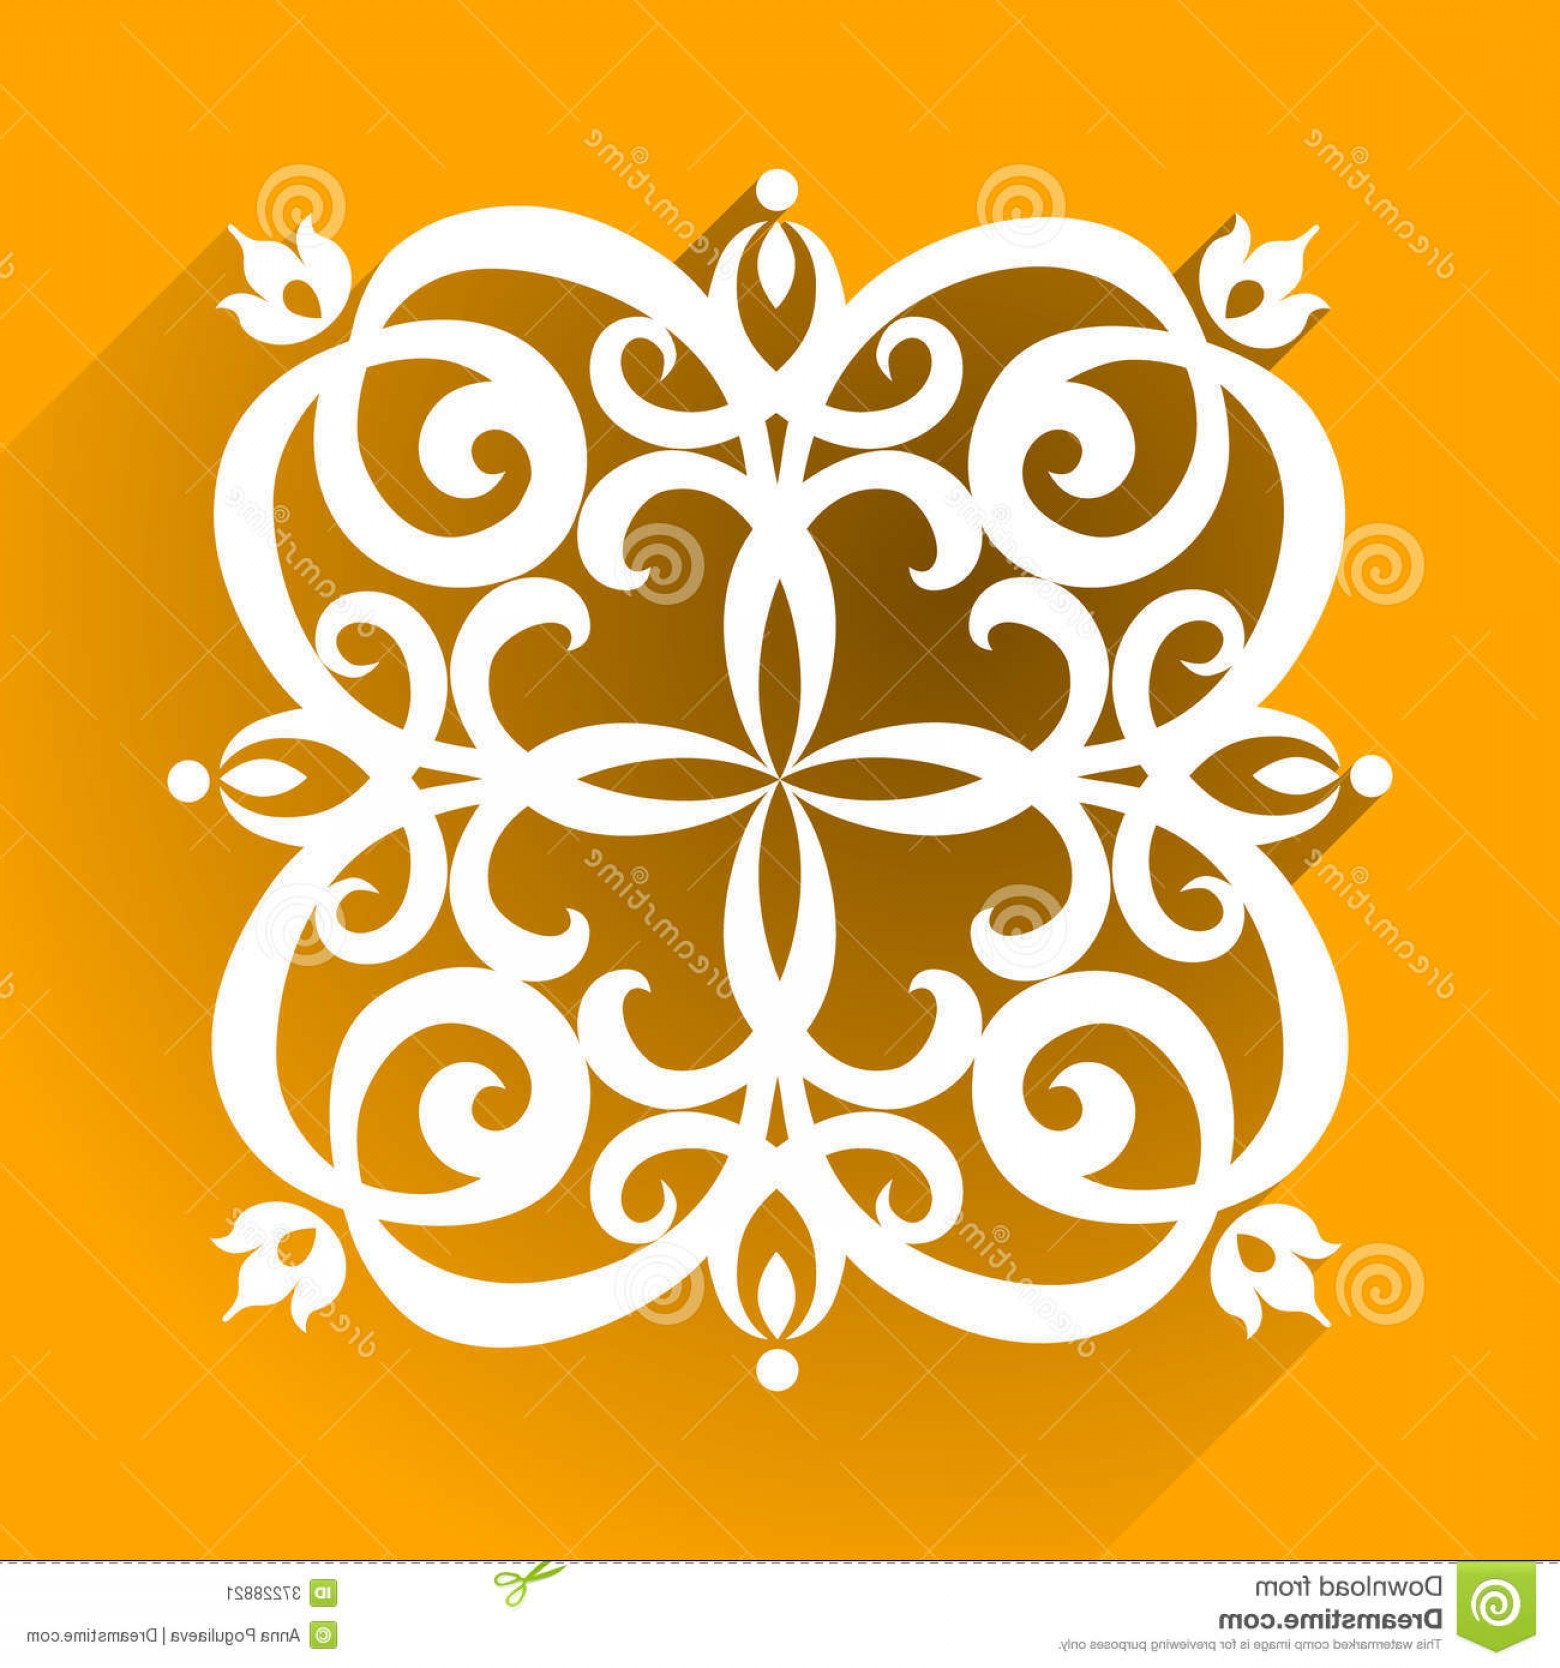 Victorian Ornamental Designs Vector: Stock Image Vector Victorian Ornament Flat Design Style Ornate Element Toolkit Designer Can Be Used Decorating Image